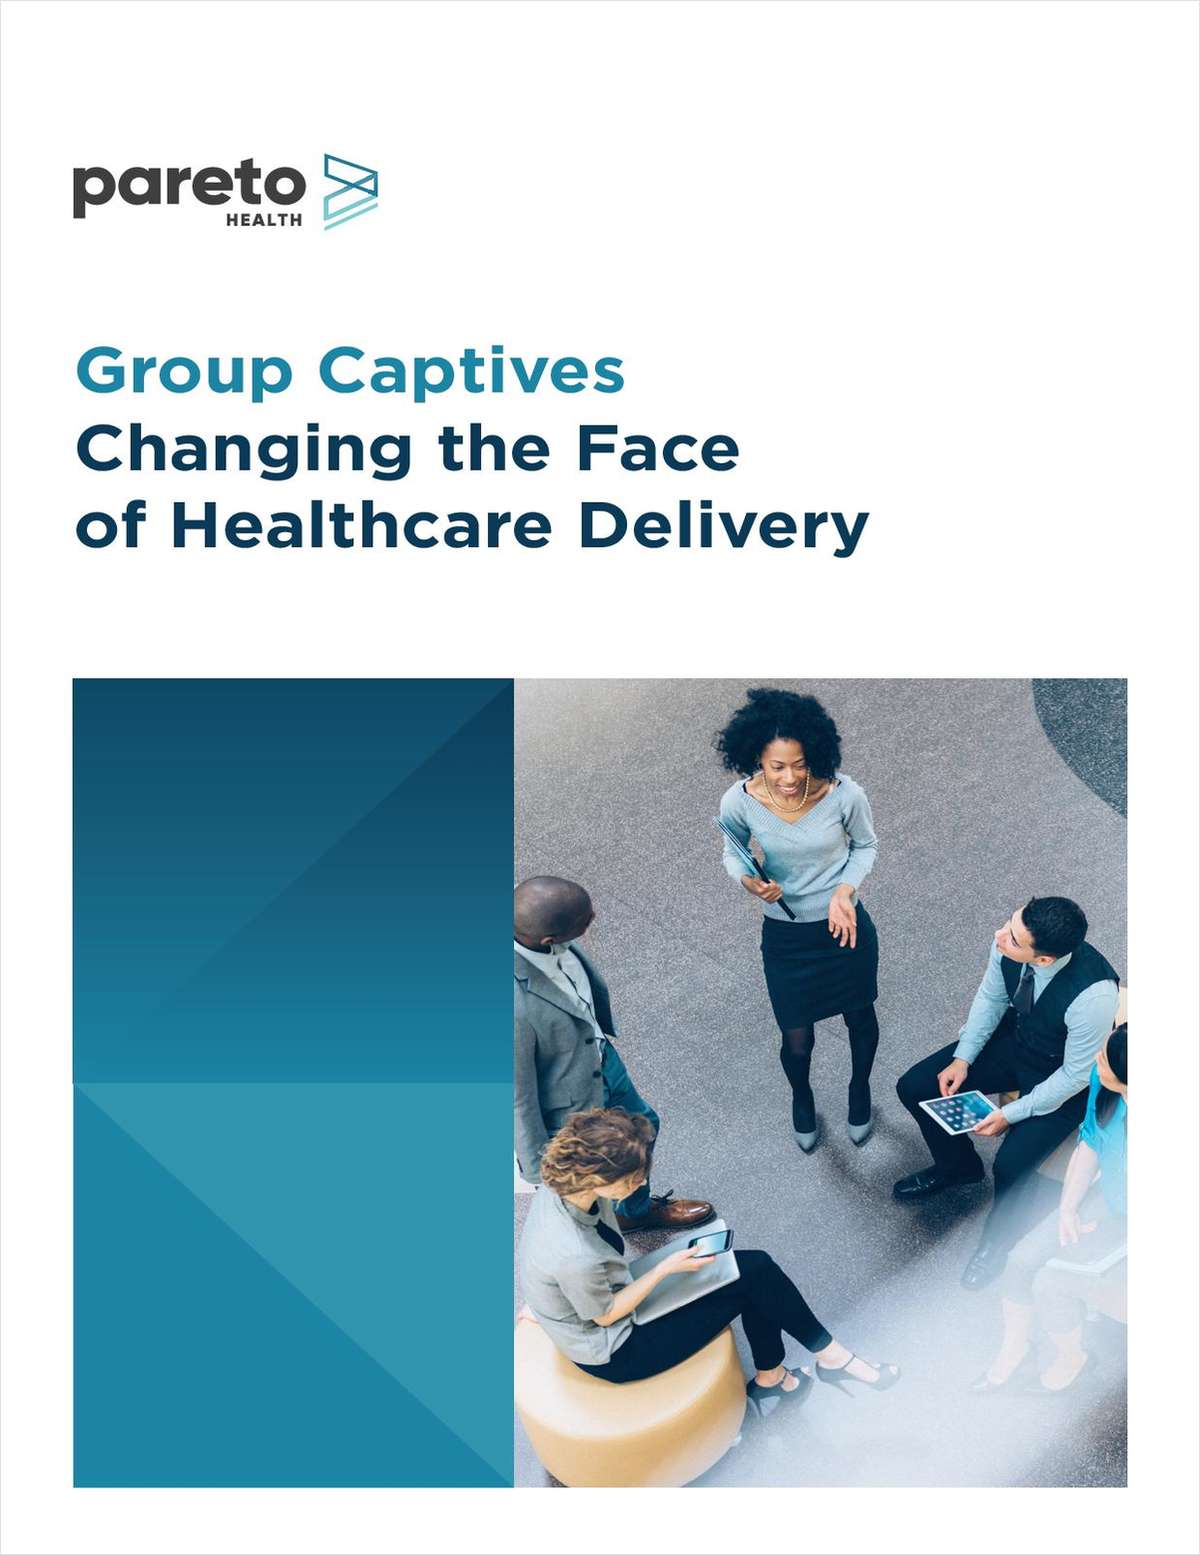 Group Captives: Changing the Face of Healthcare Delivery